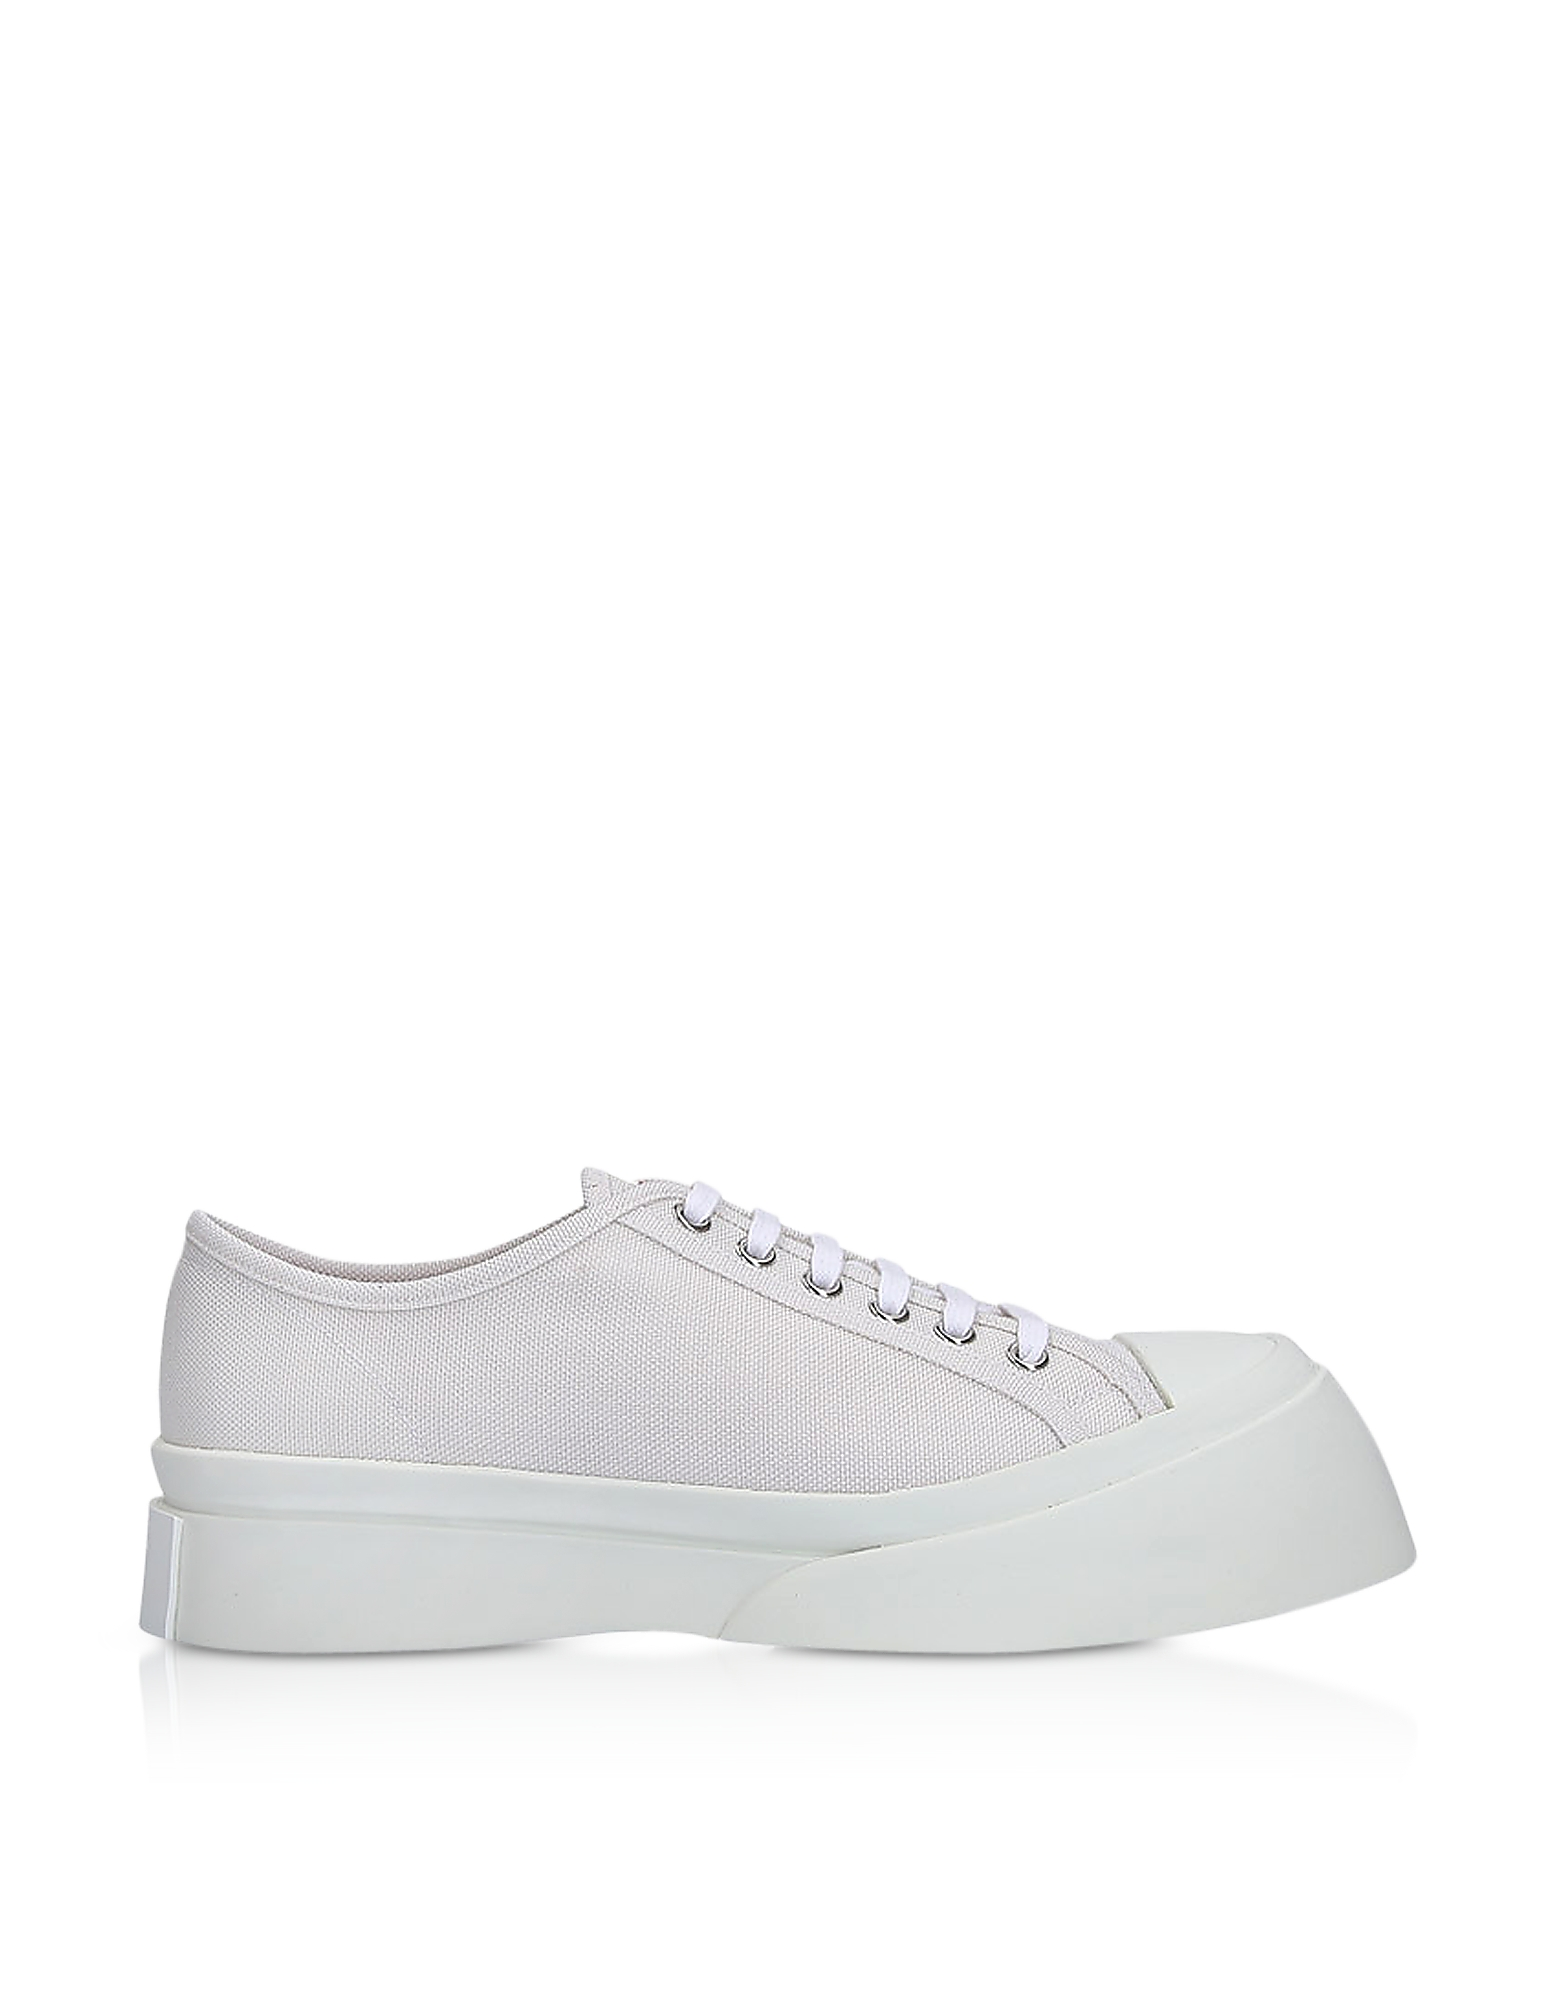 Marni Shoes, Lily White Canvas Sneakers